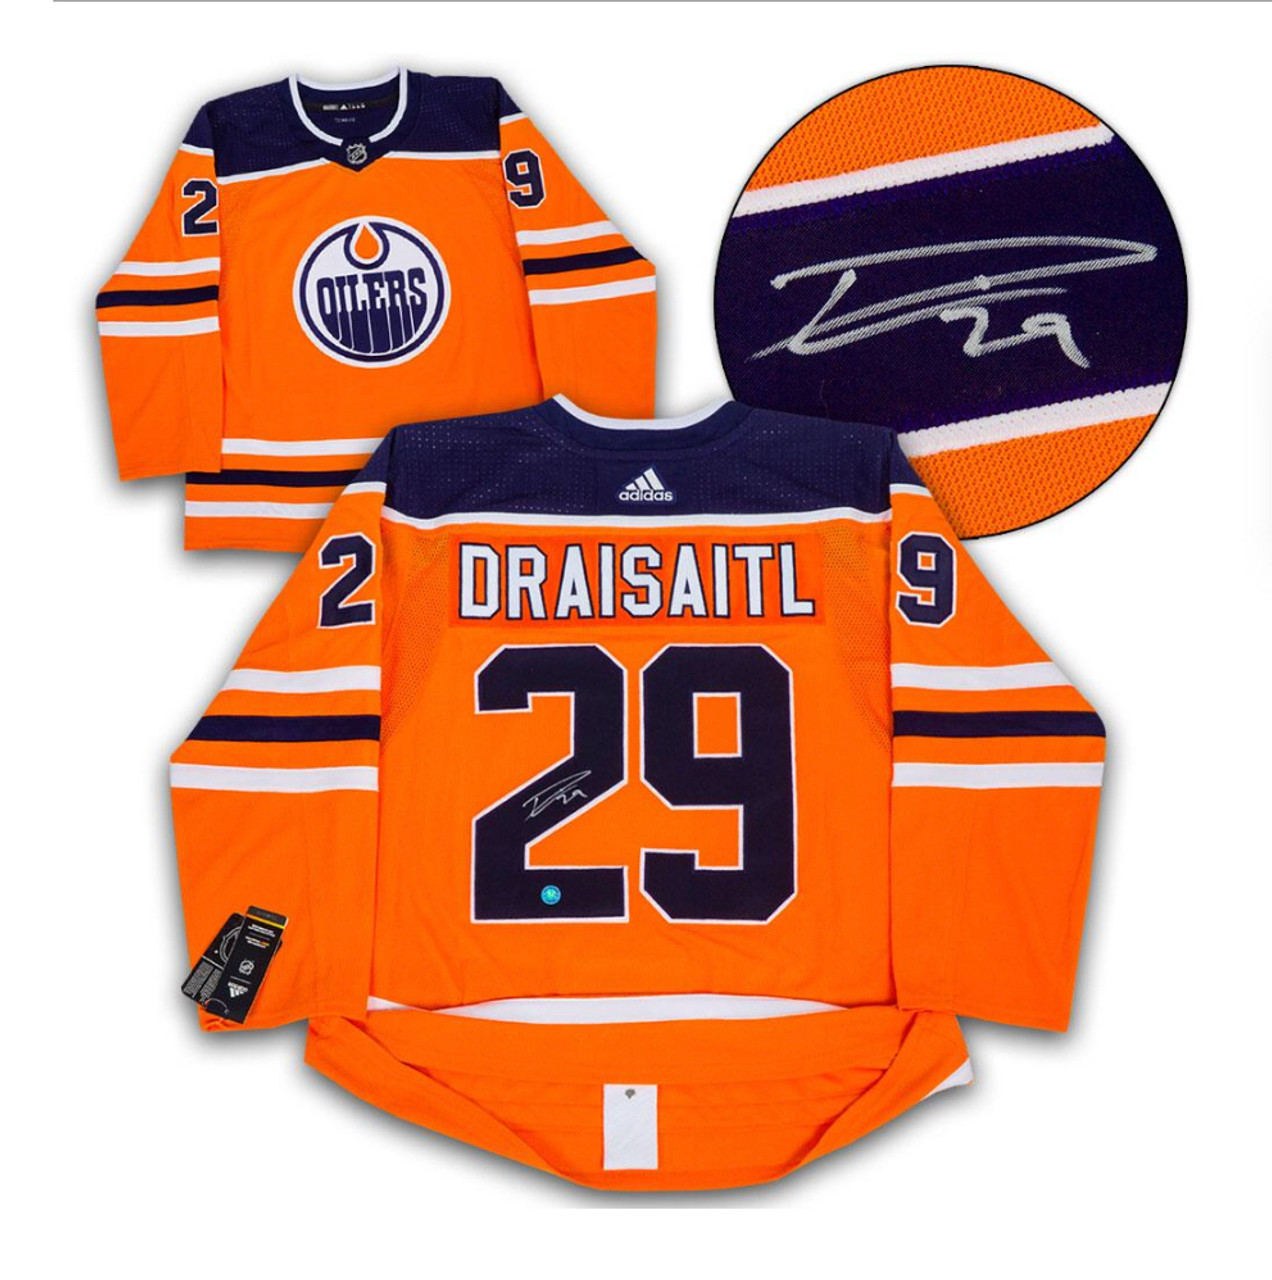 low priced 2db65 a2cfb Leon Draisaitl Edmonton Oilers Autographed Adidas Pro Authentic on Ice  Orange Home Jersey